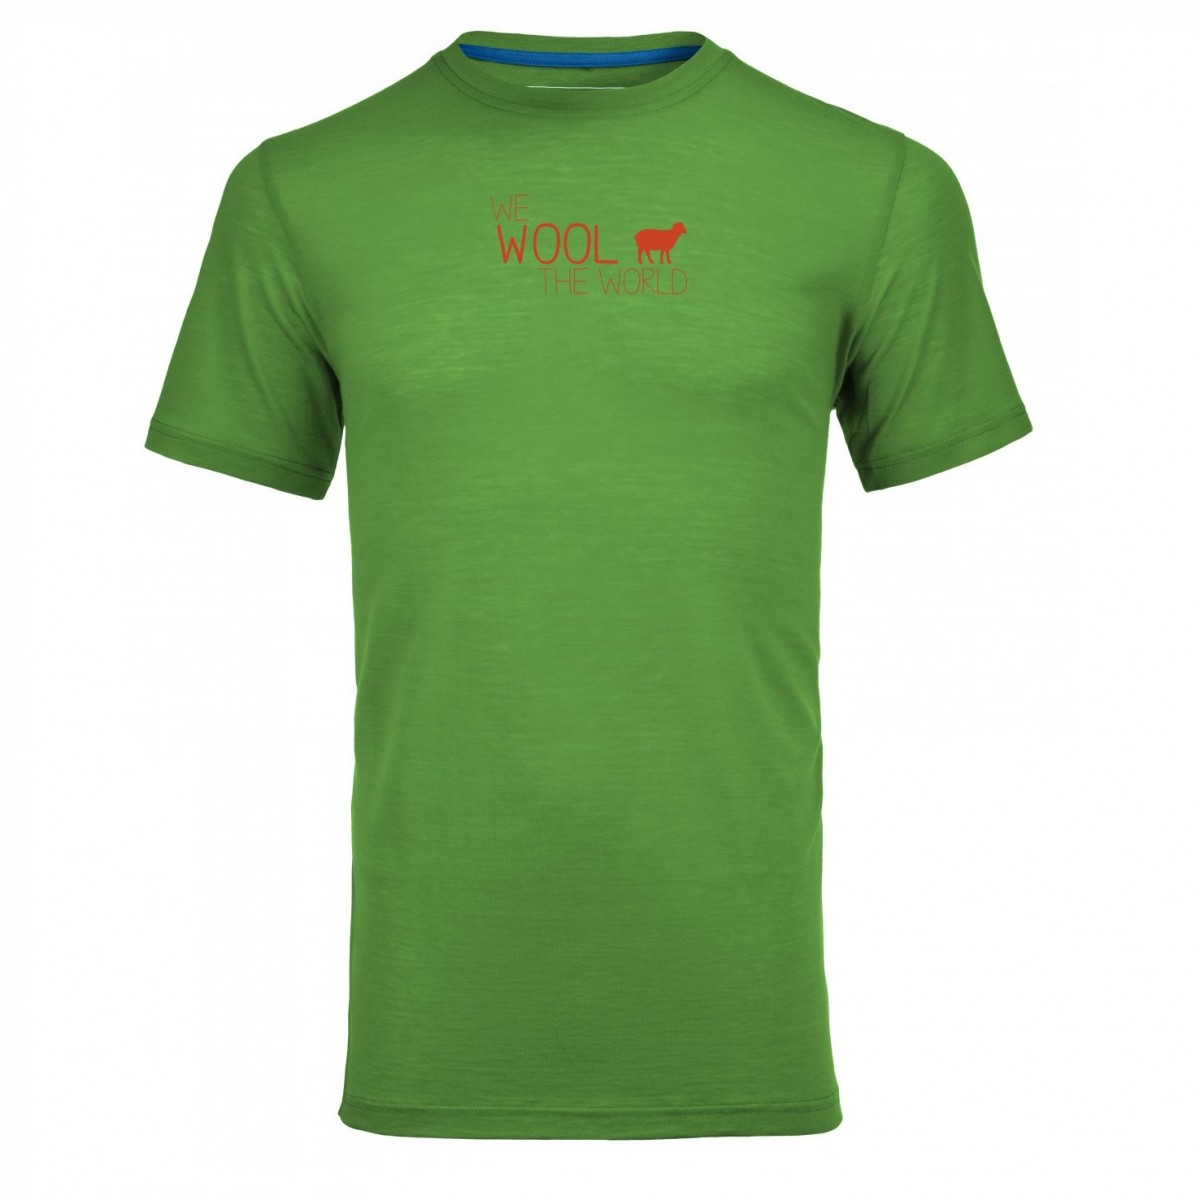 770b3e27f7 T-Shirt Uomo Montagna Ortovox Merino Cool World Absolut Green